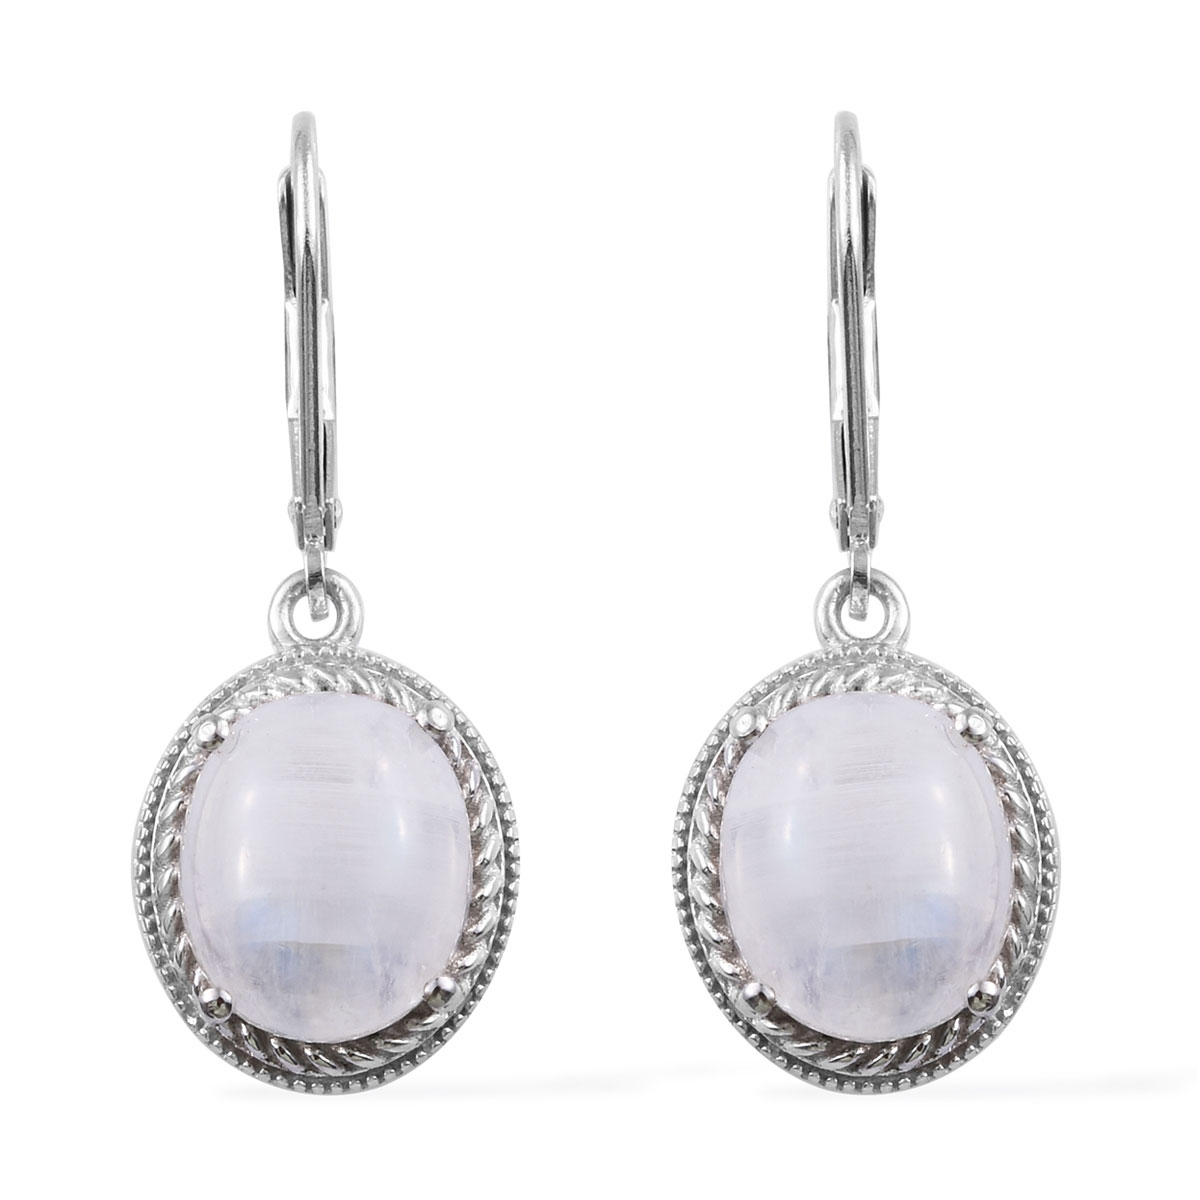 Rainbow Moonstone Earrings In Platinum Over Sterling Silver 9 35 Ctw